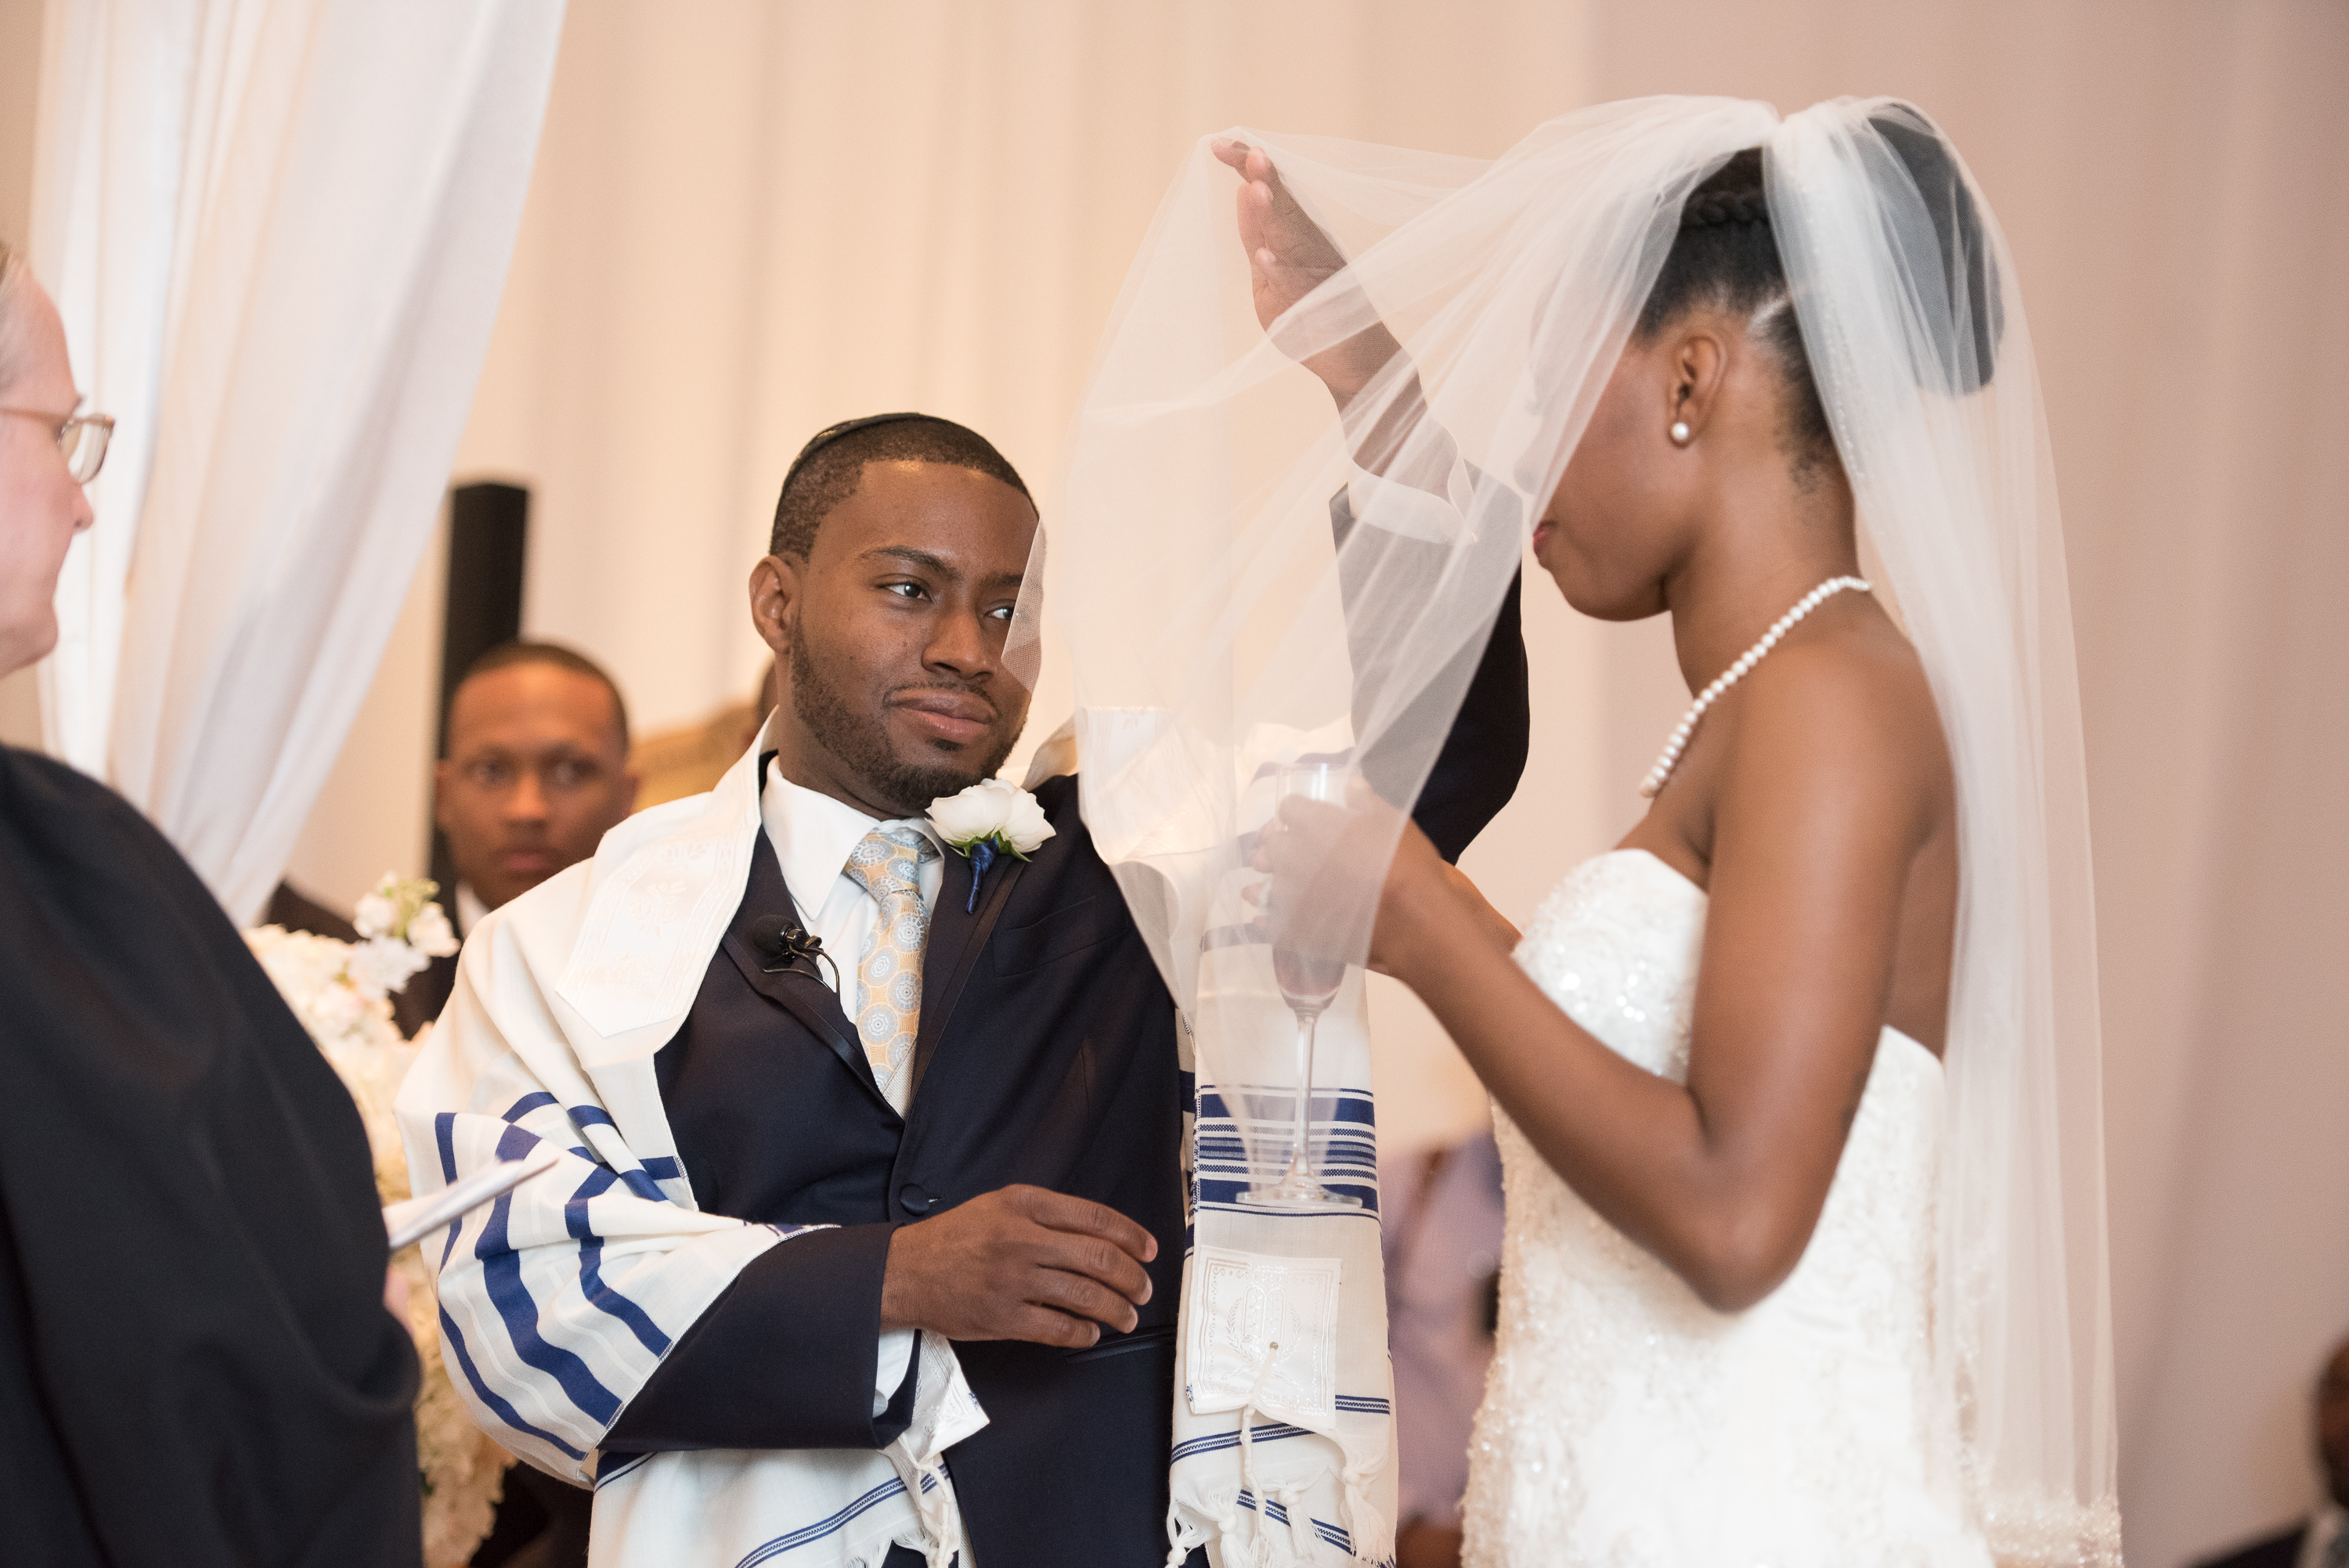 dallas-jewish-wedding-donnell-perry-photo-24